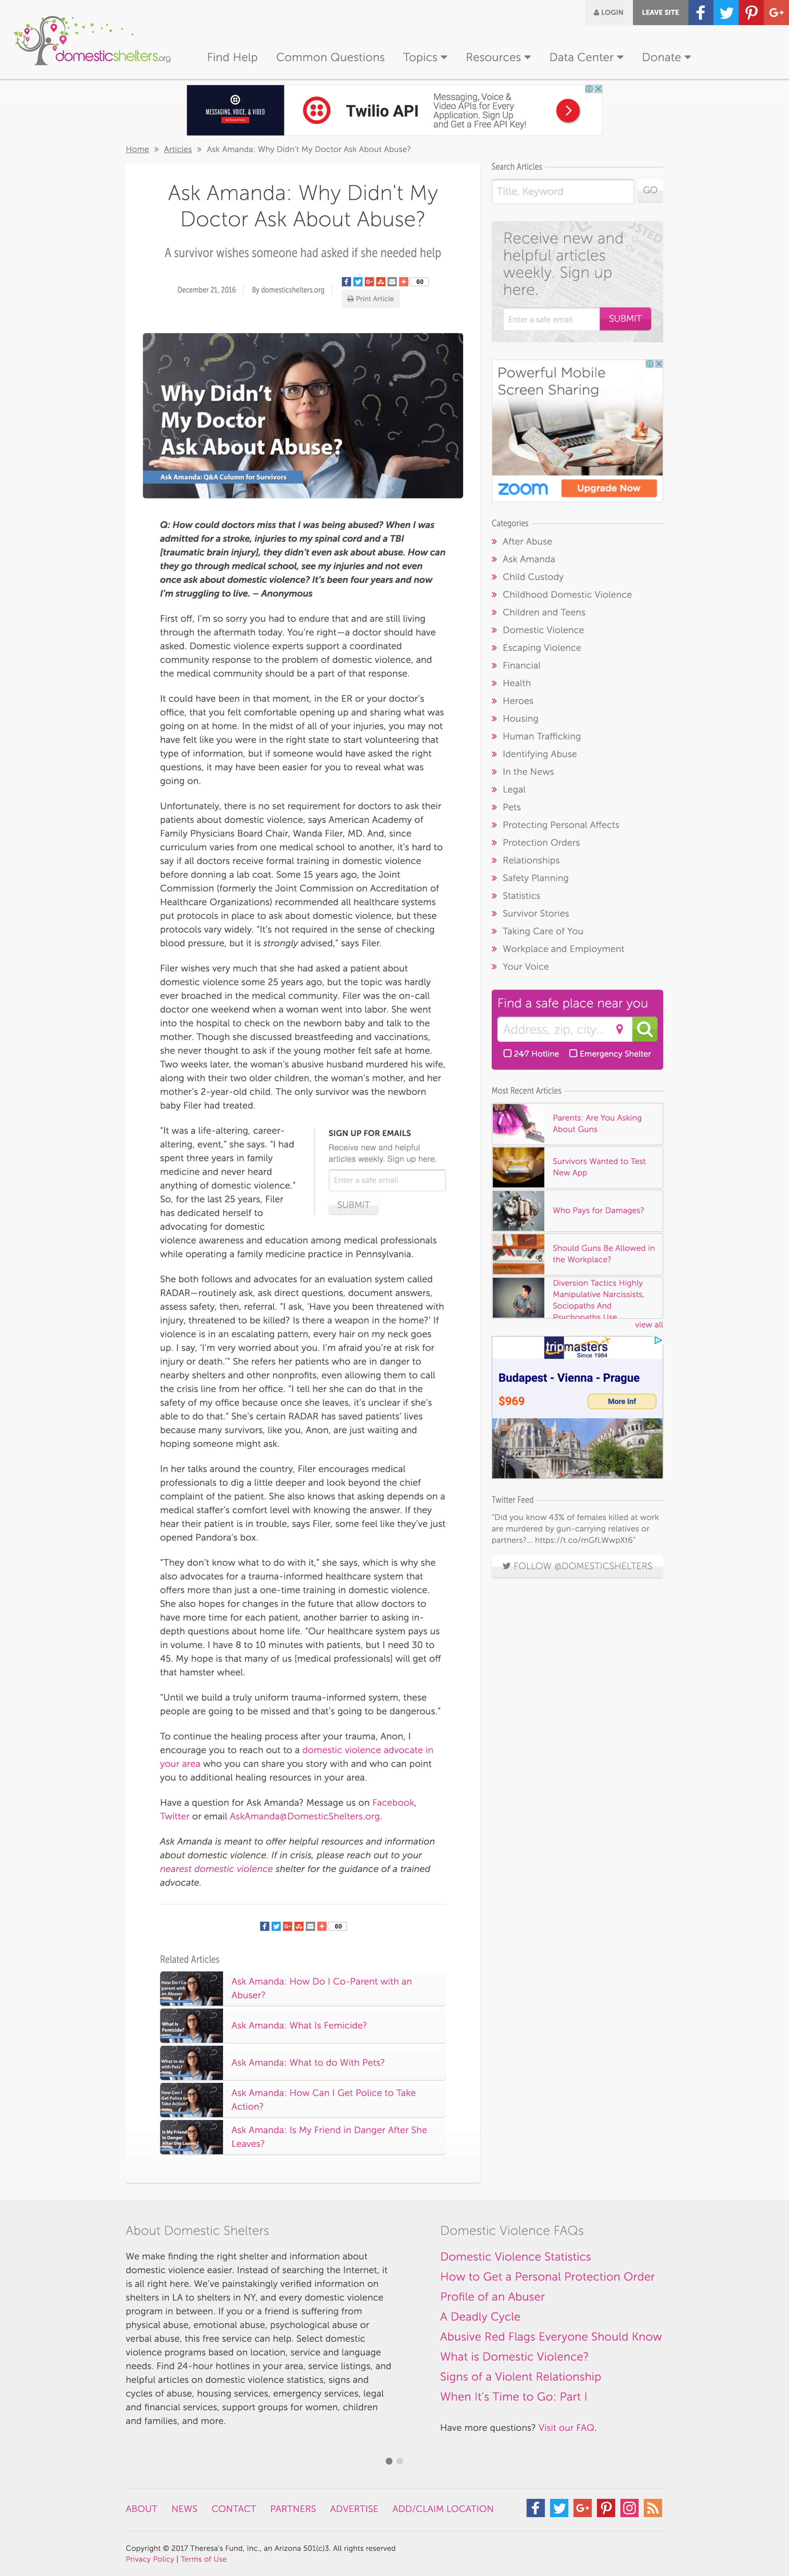 screencapture-domesticshelters-org-domestic-violence-articles-information-ask-amanda-nbsp-why-didn-t-my-doctor-ask-about-abuse-1498599396630.png